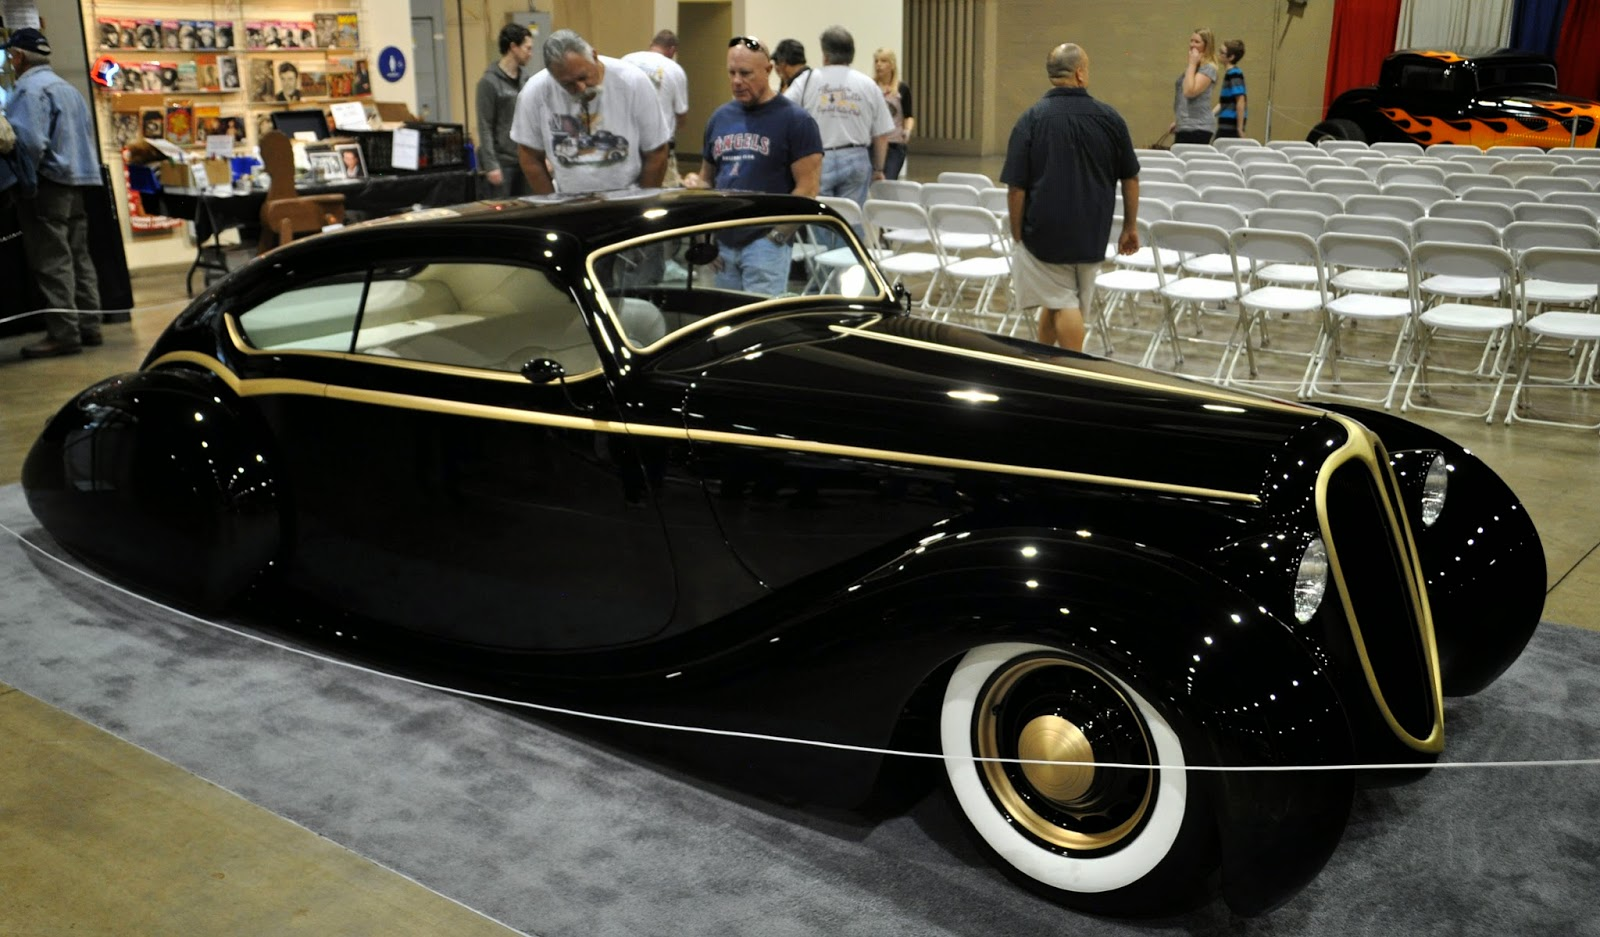 Just A Car Guy The Black Pearl Newest From Rick Dore And